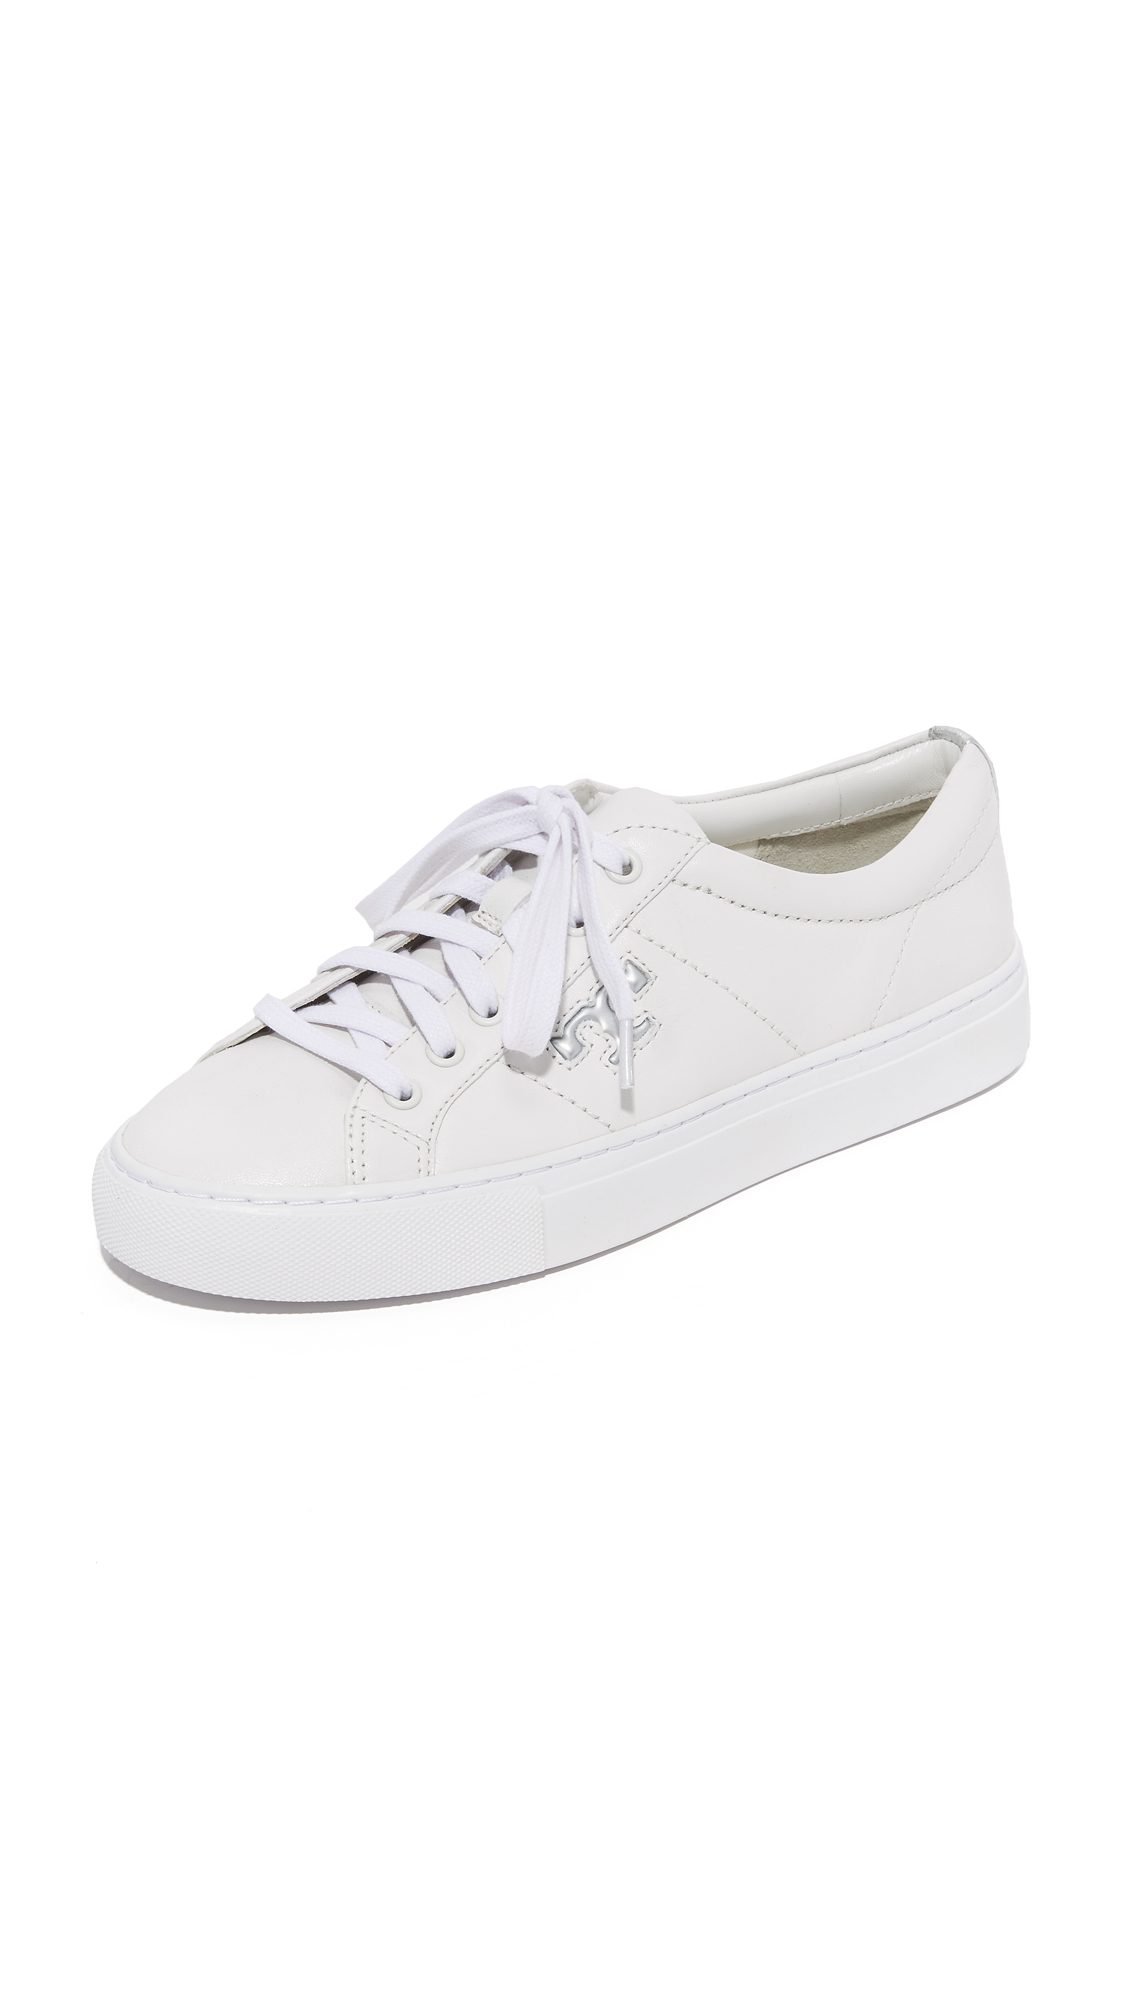 7f6a40ebcd011a Tory Burch Chace Lace Up Sneakers